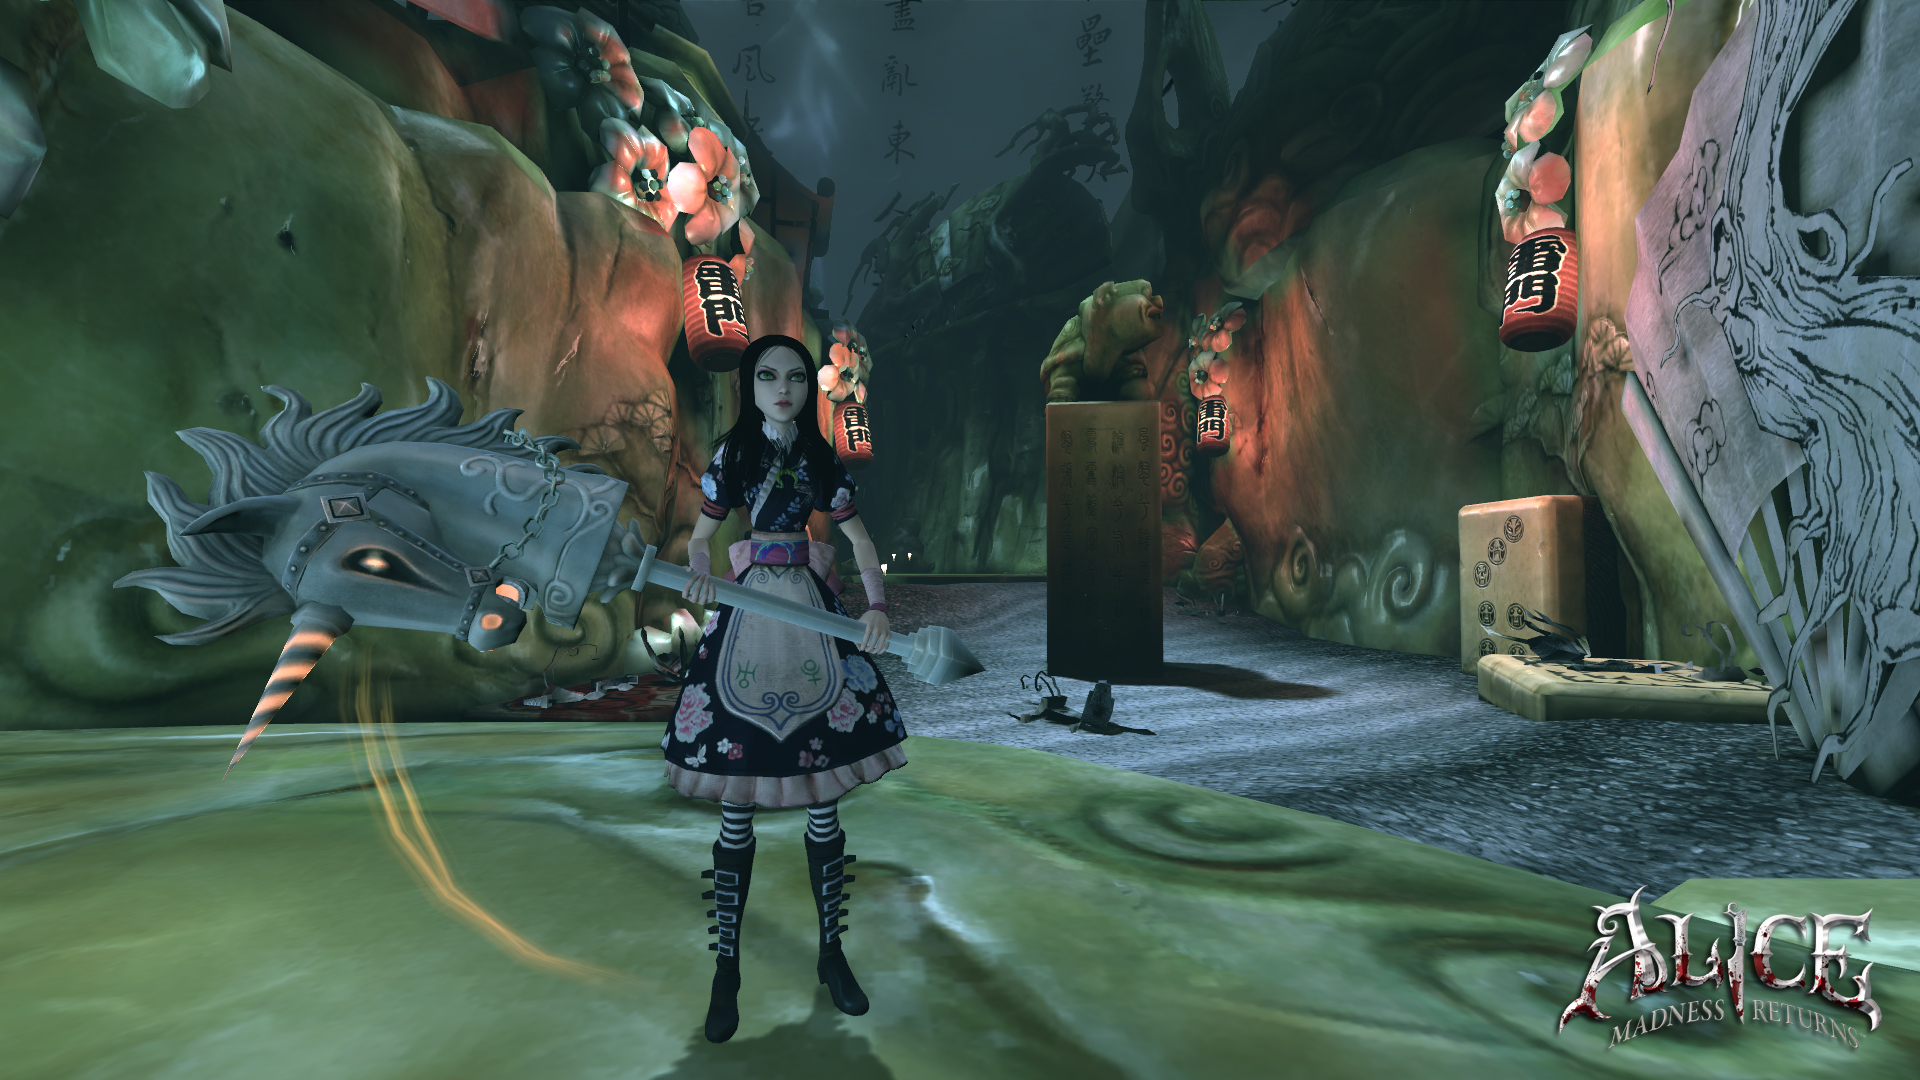 Screenshot for the game Alice: Madness Returns (2011) RS | Repack by R.G. The mechanics